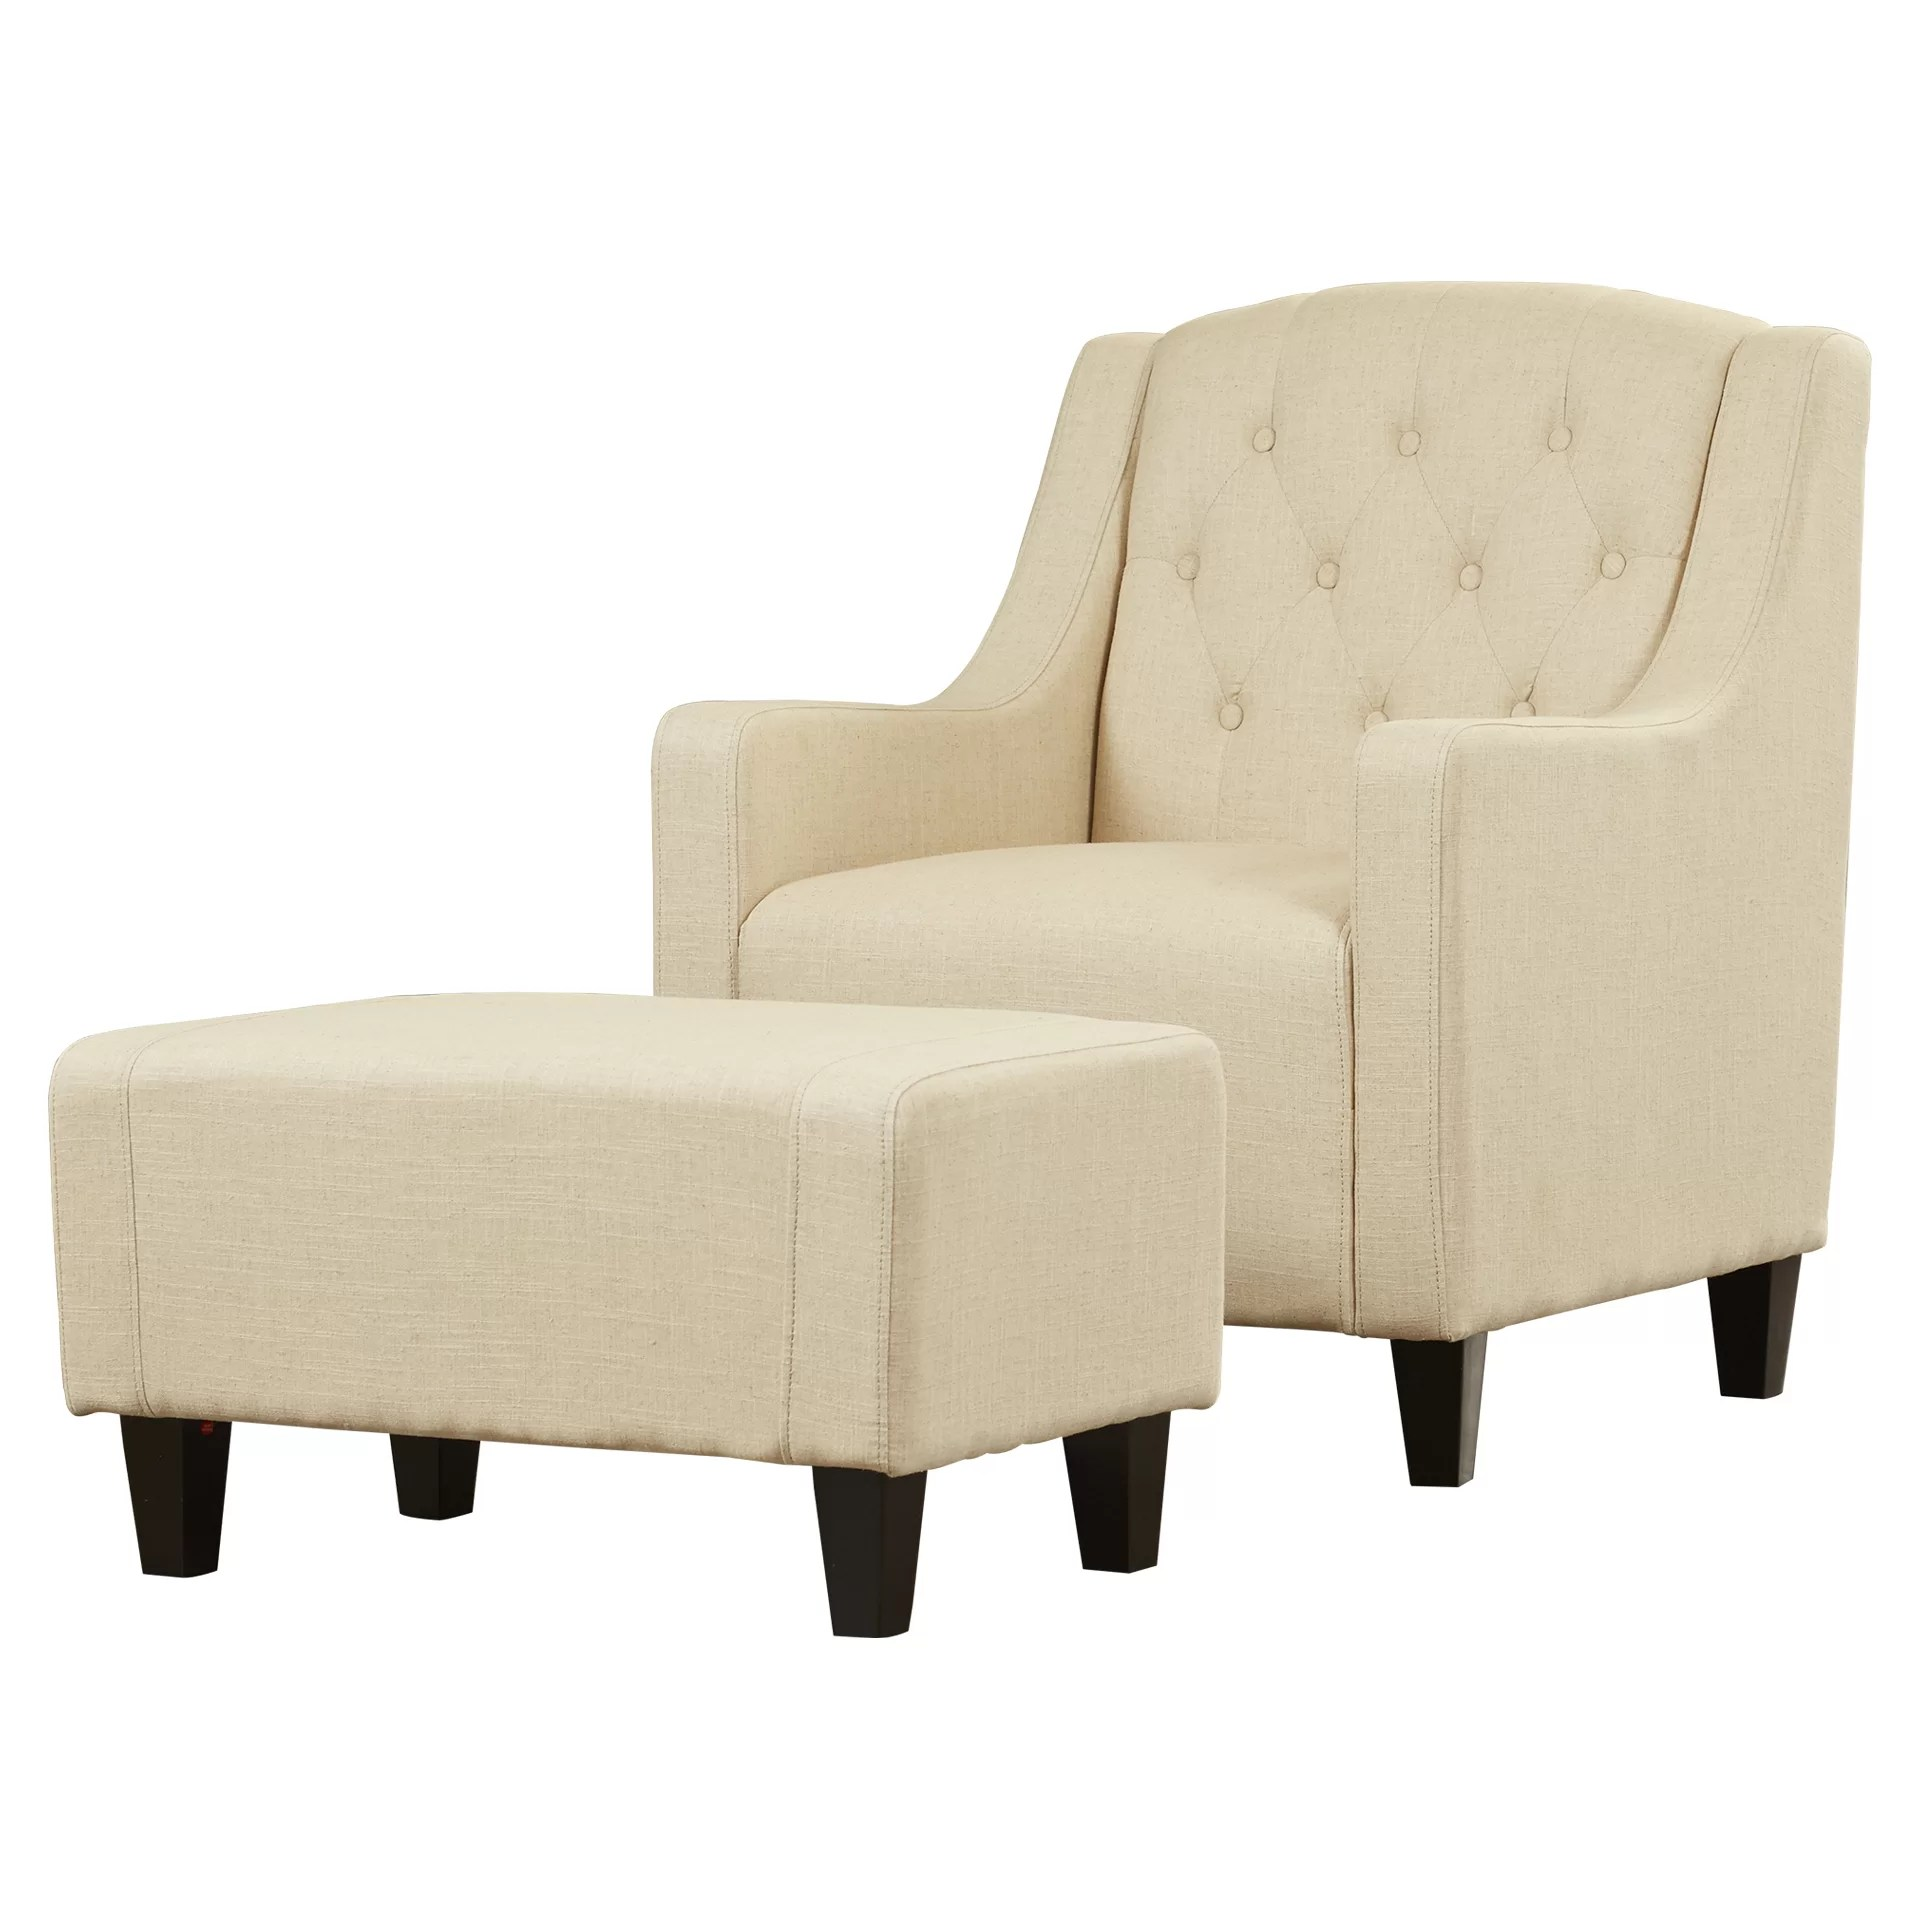 Chairs With Ottomans Three Posts Simpson Upholstered Club Arm Chair With